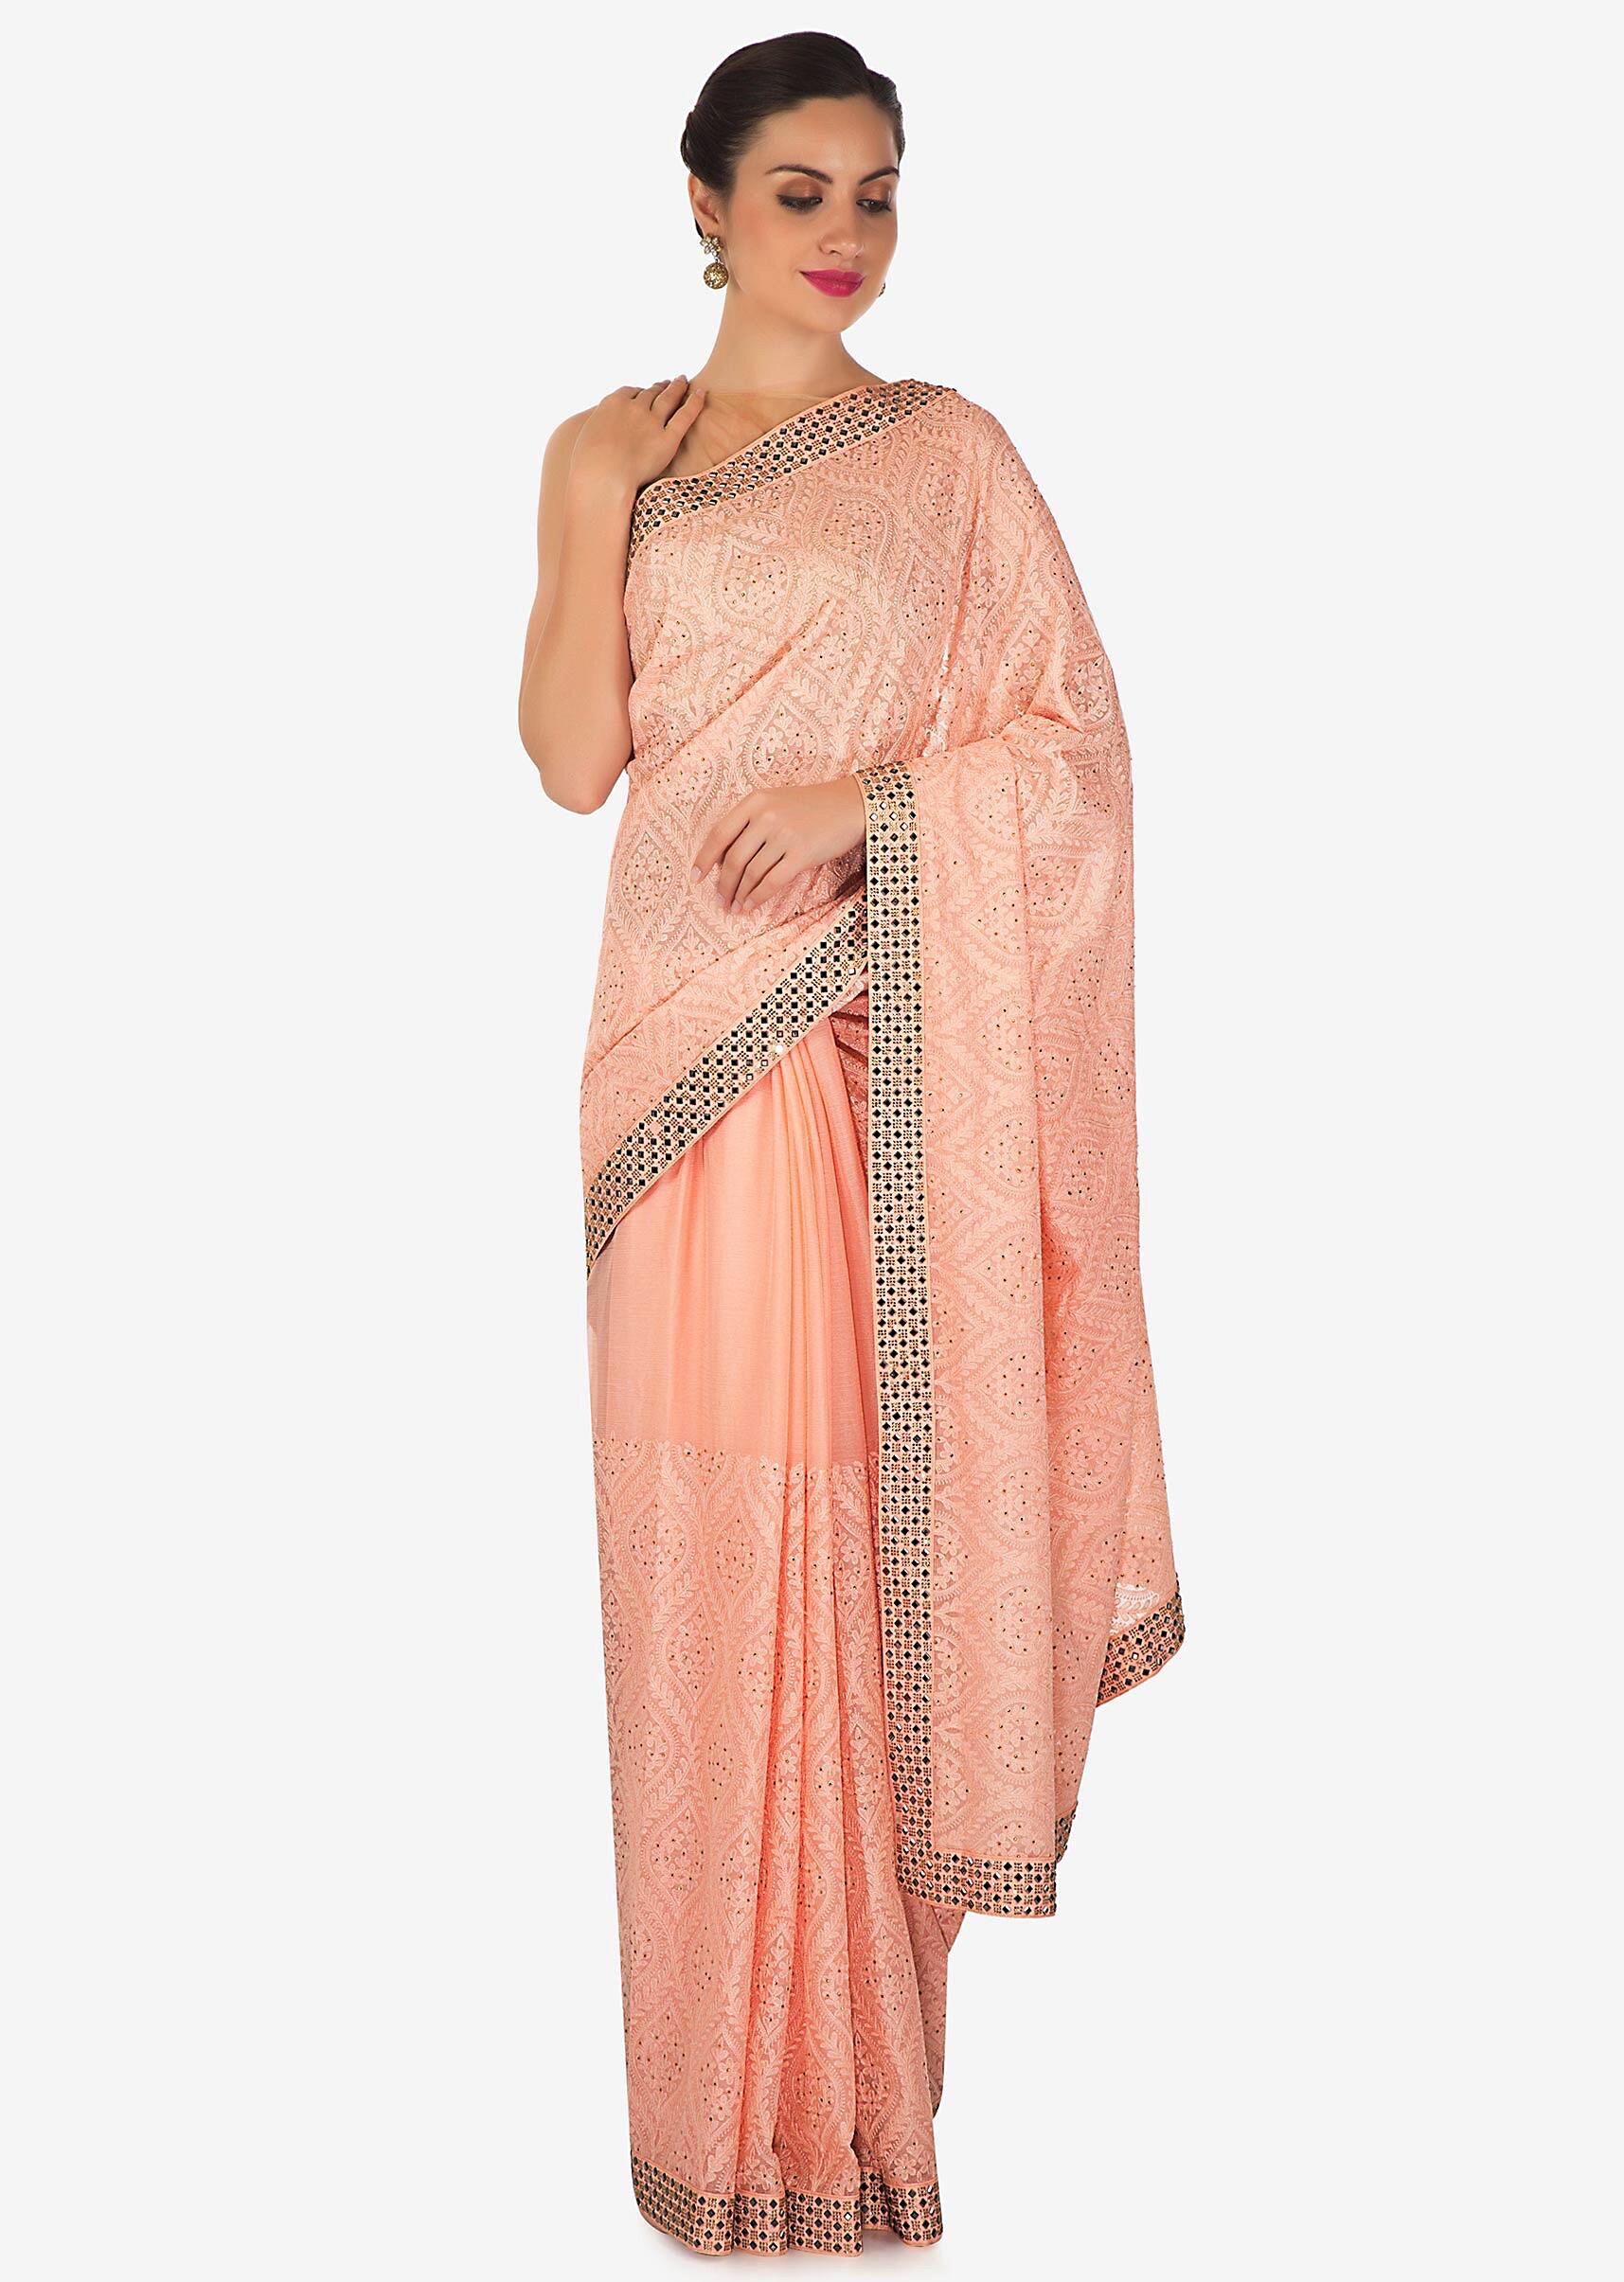 ed548edcfca5d Light pink saree in georgette with thread and kundan work only on Kalki